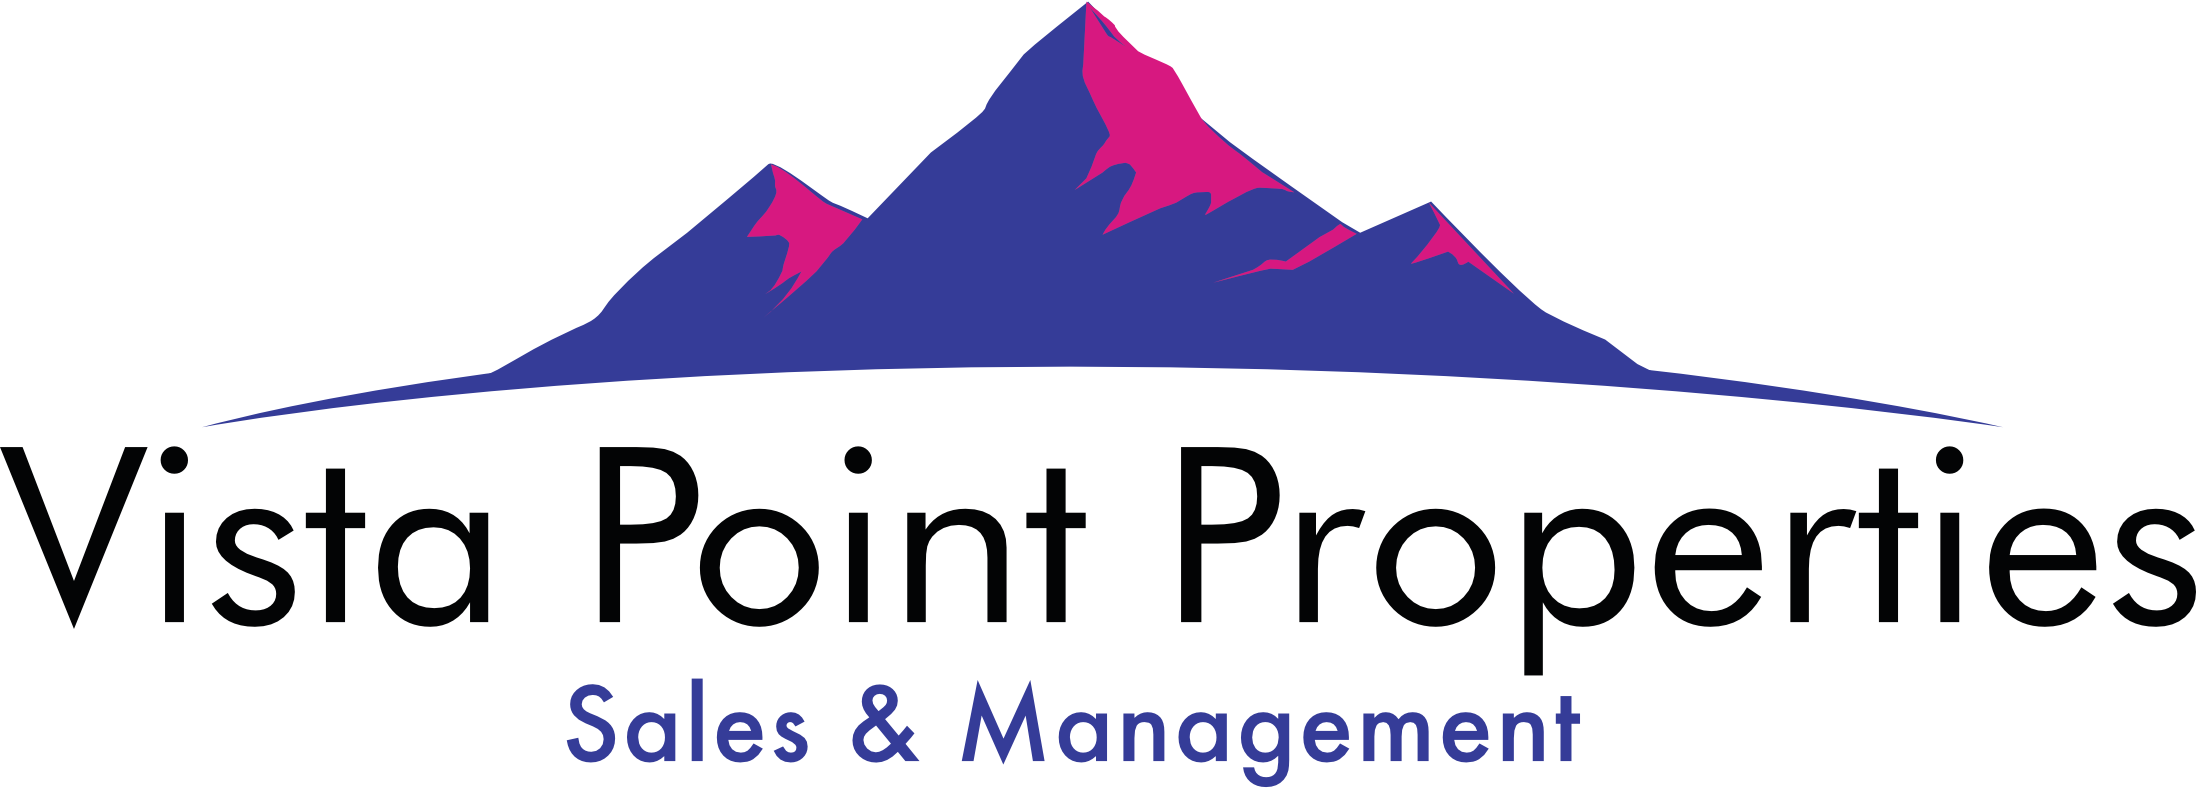 Vista Point Properties |   Resources